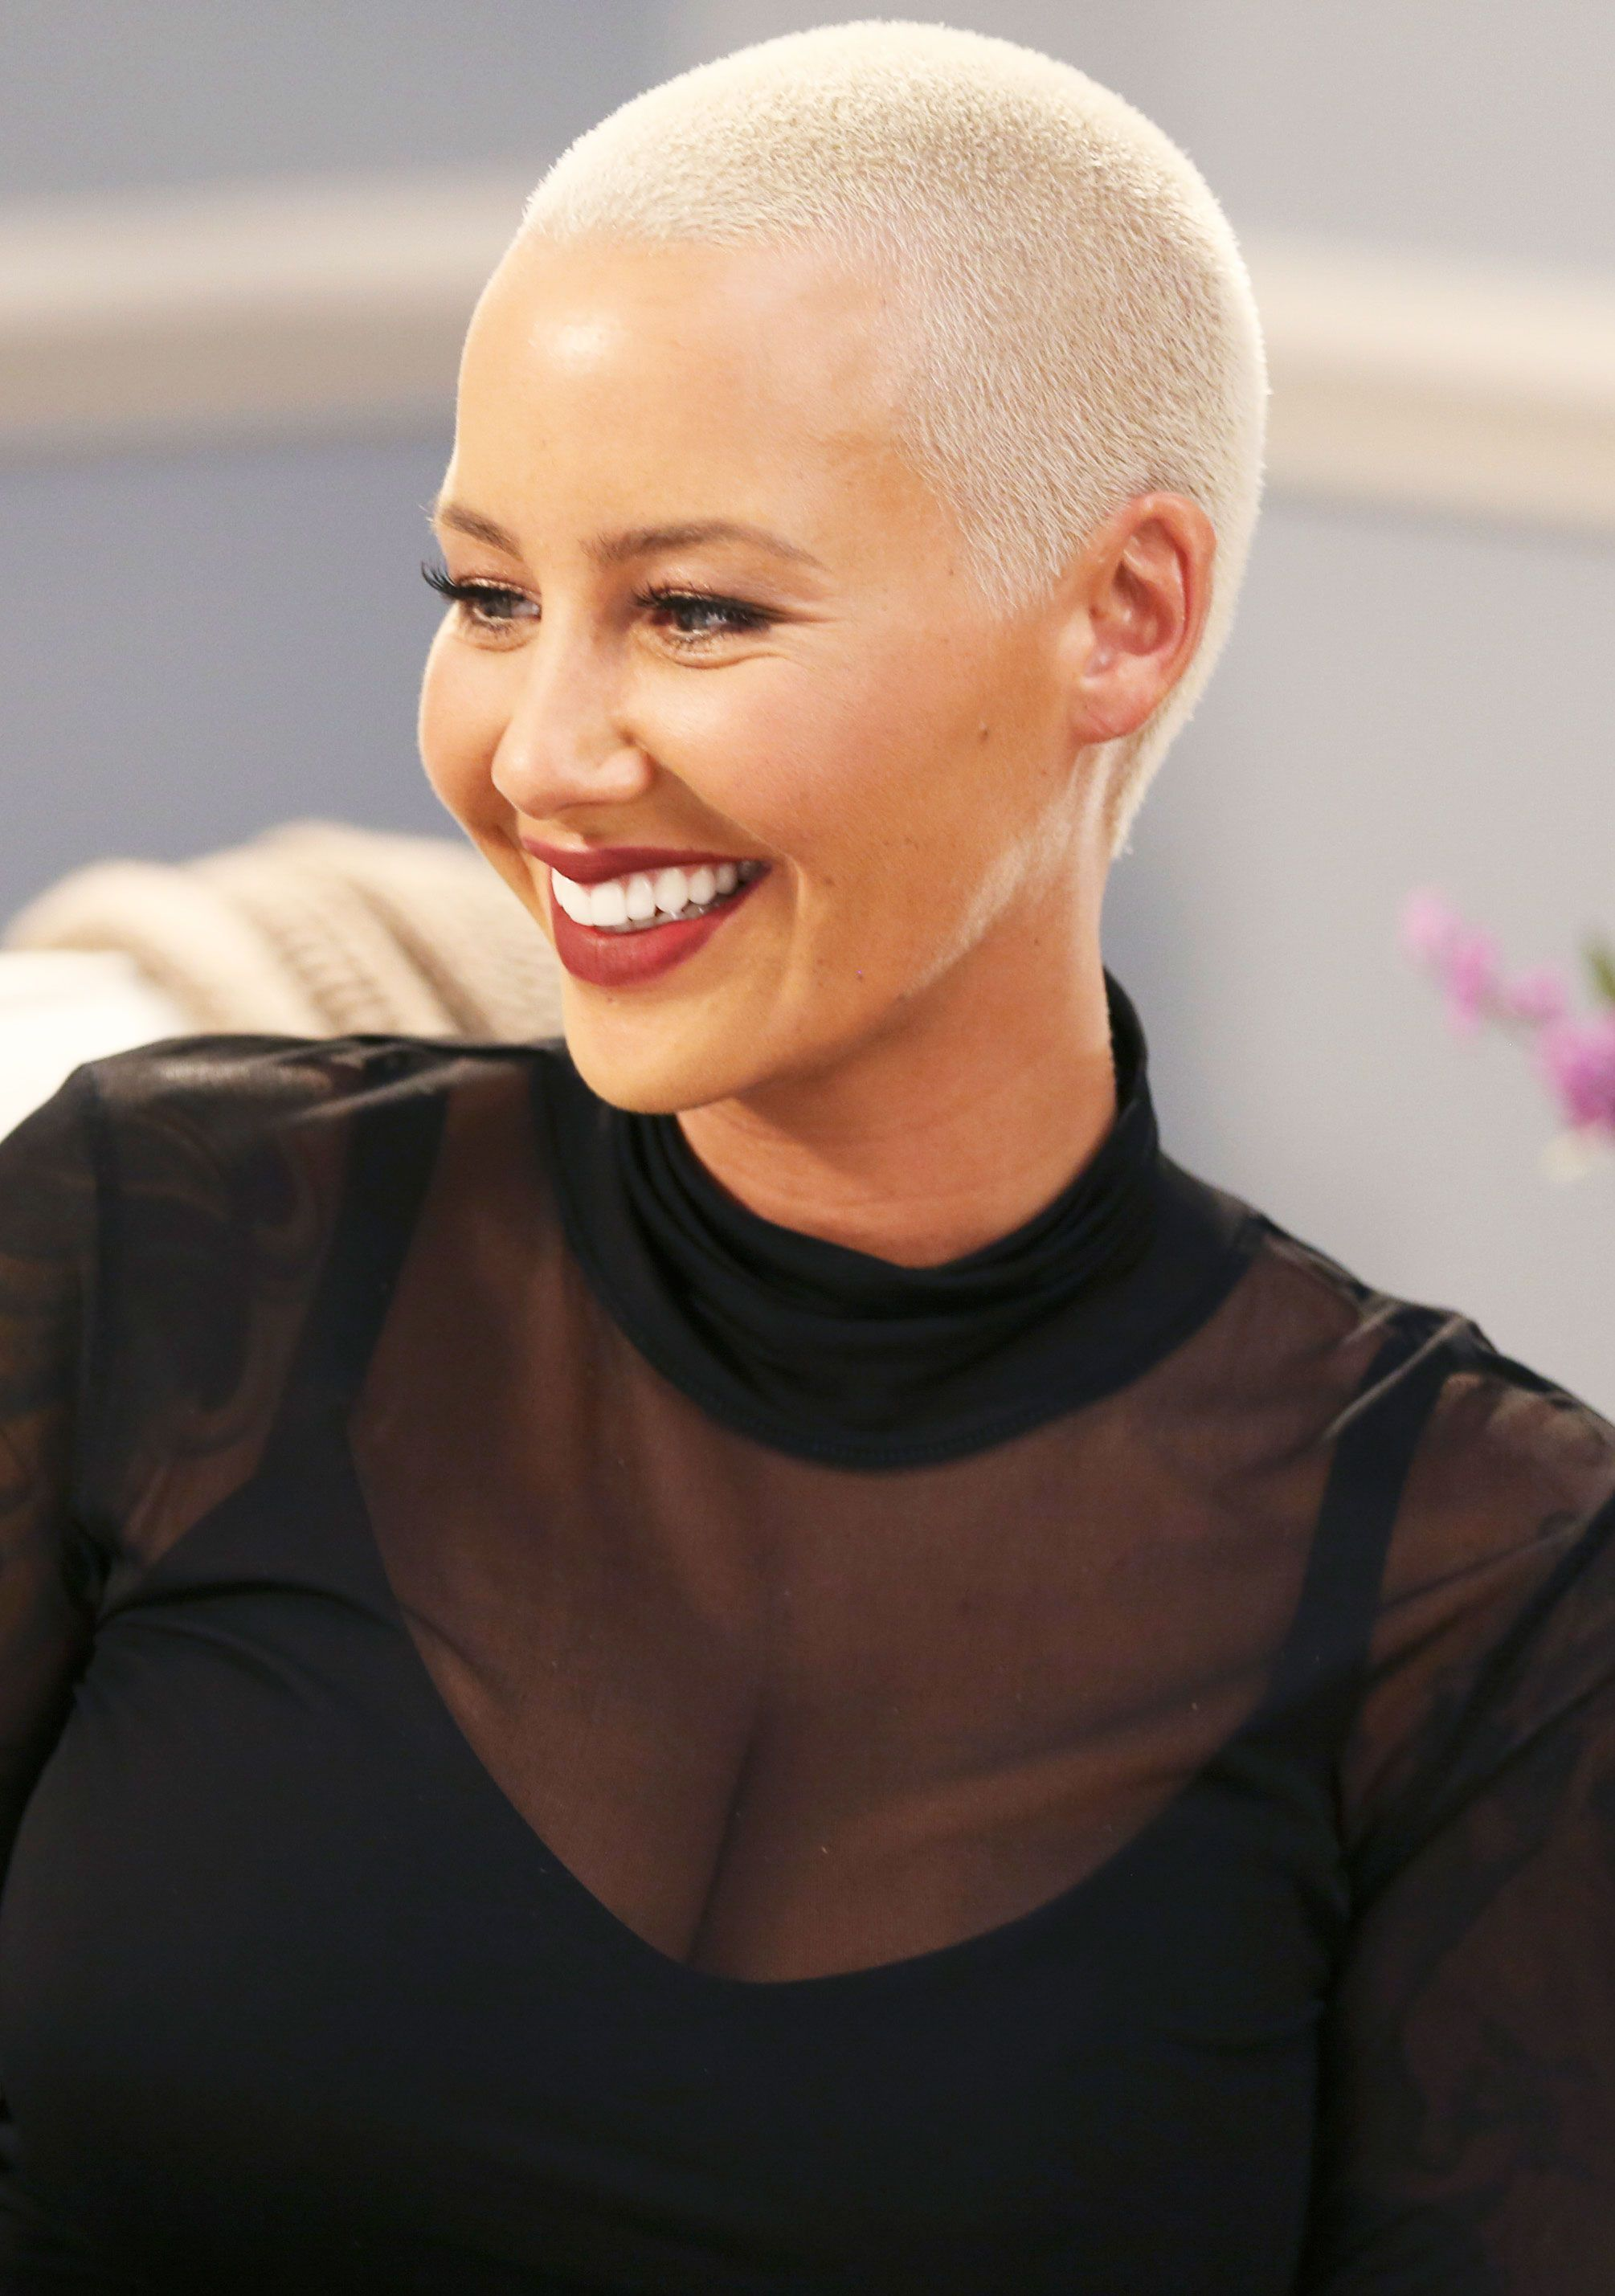 Amber Rose Is Unrecognizable After Dramatic Makeover See Her Shocking New Look Amber Rose Hair Amber Rose Bald Look